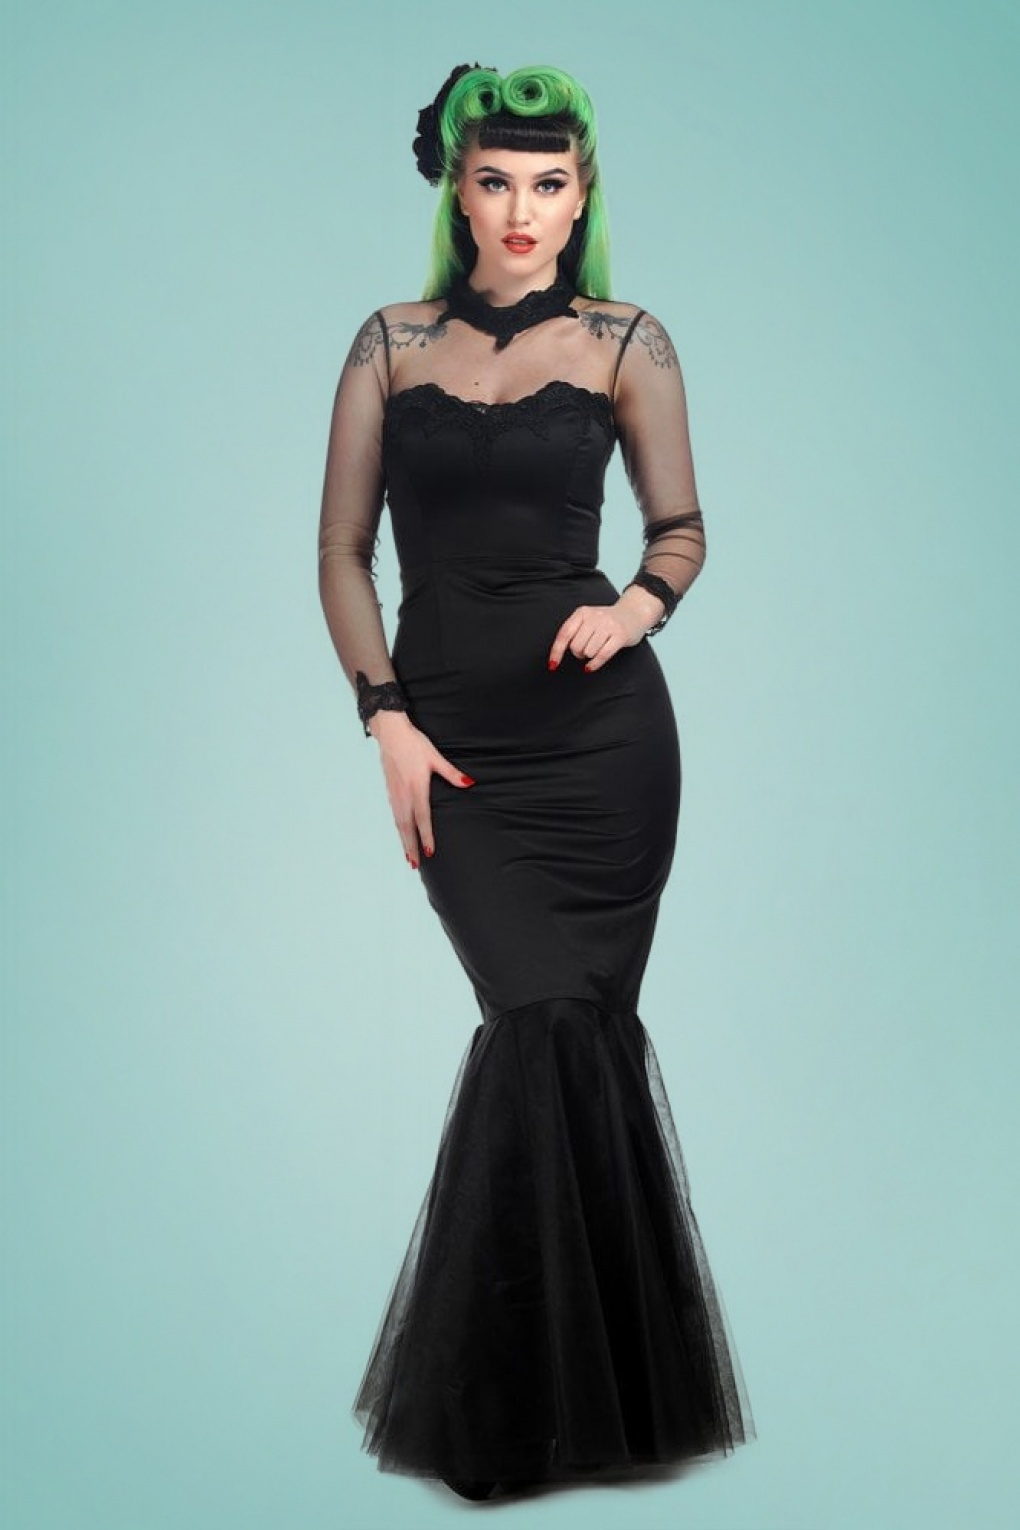 1950s Fashion History: Women's Clothing 50s Lucrezia Occasion Fishtail Maxi Dress in Black £105.40 AT vintagedancer.com